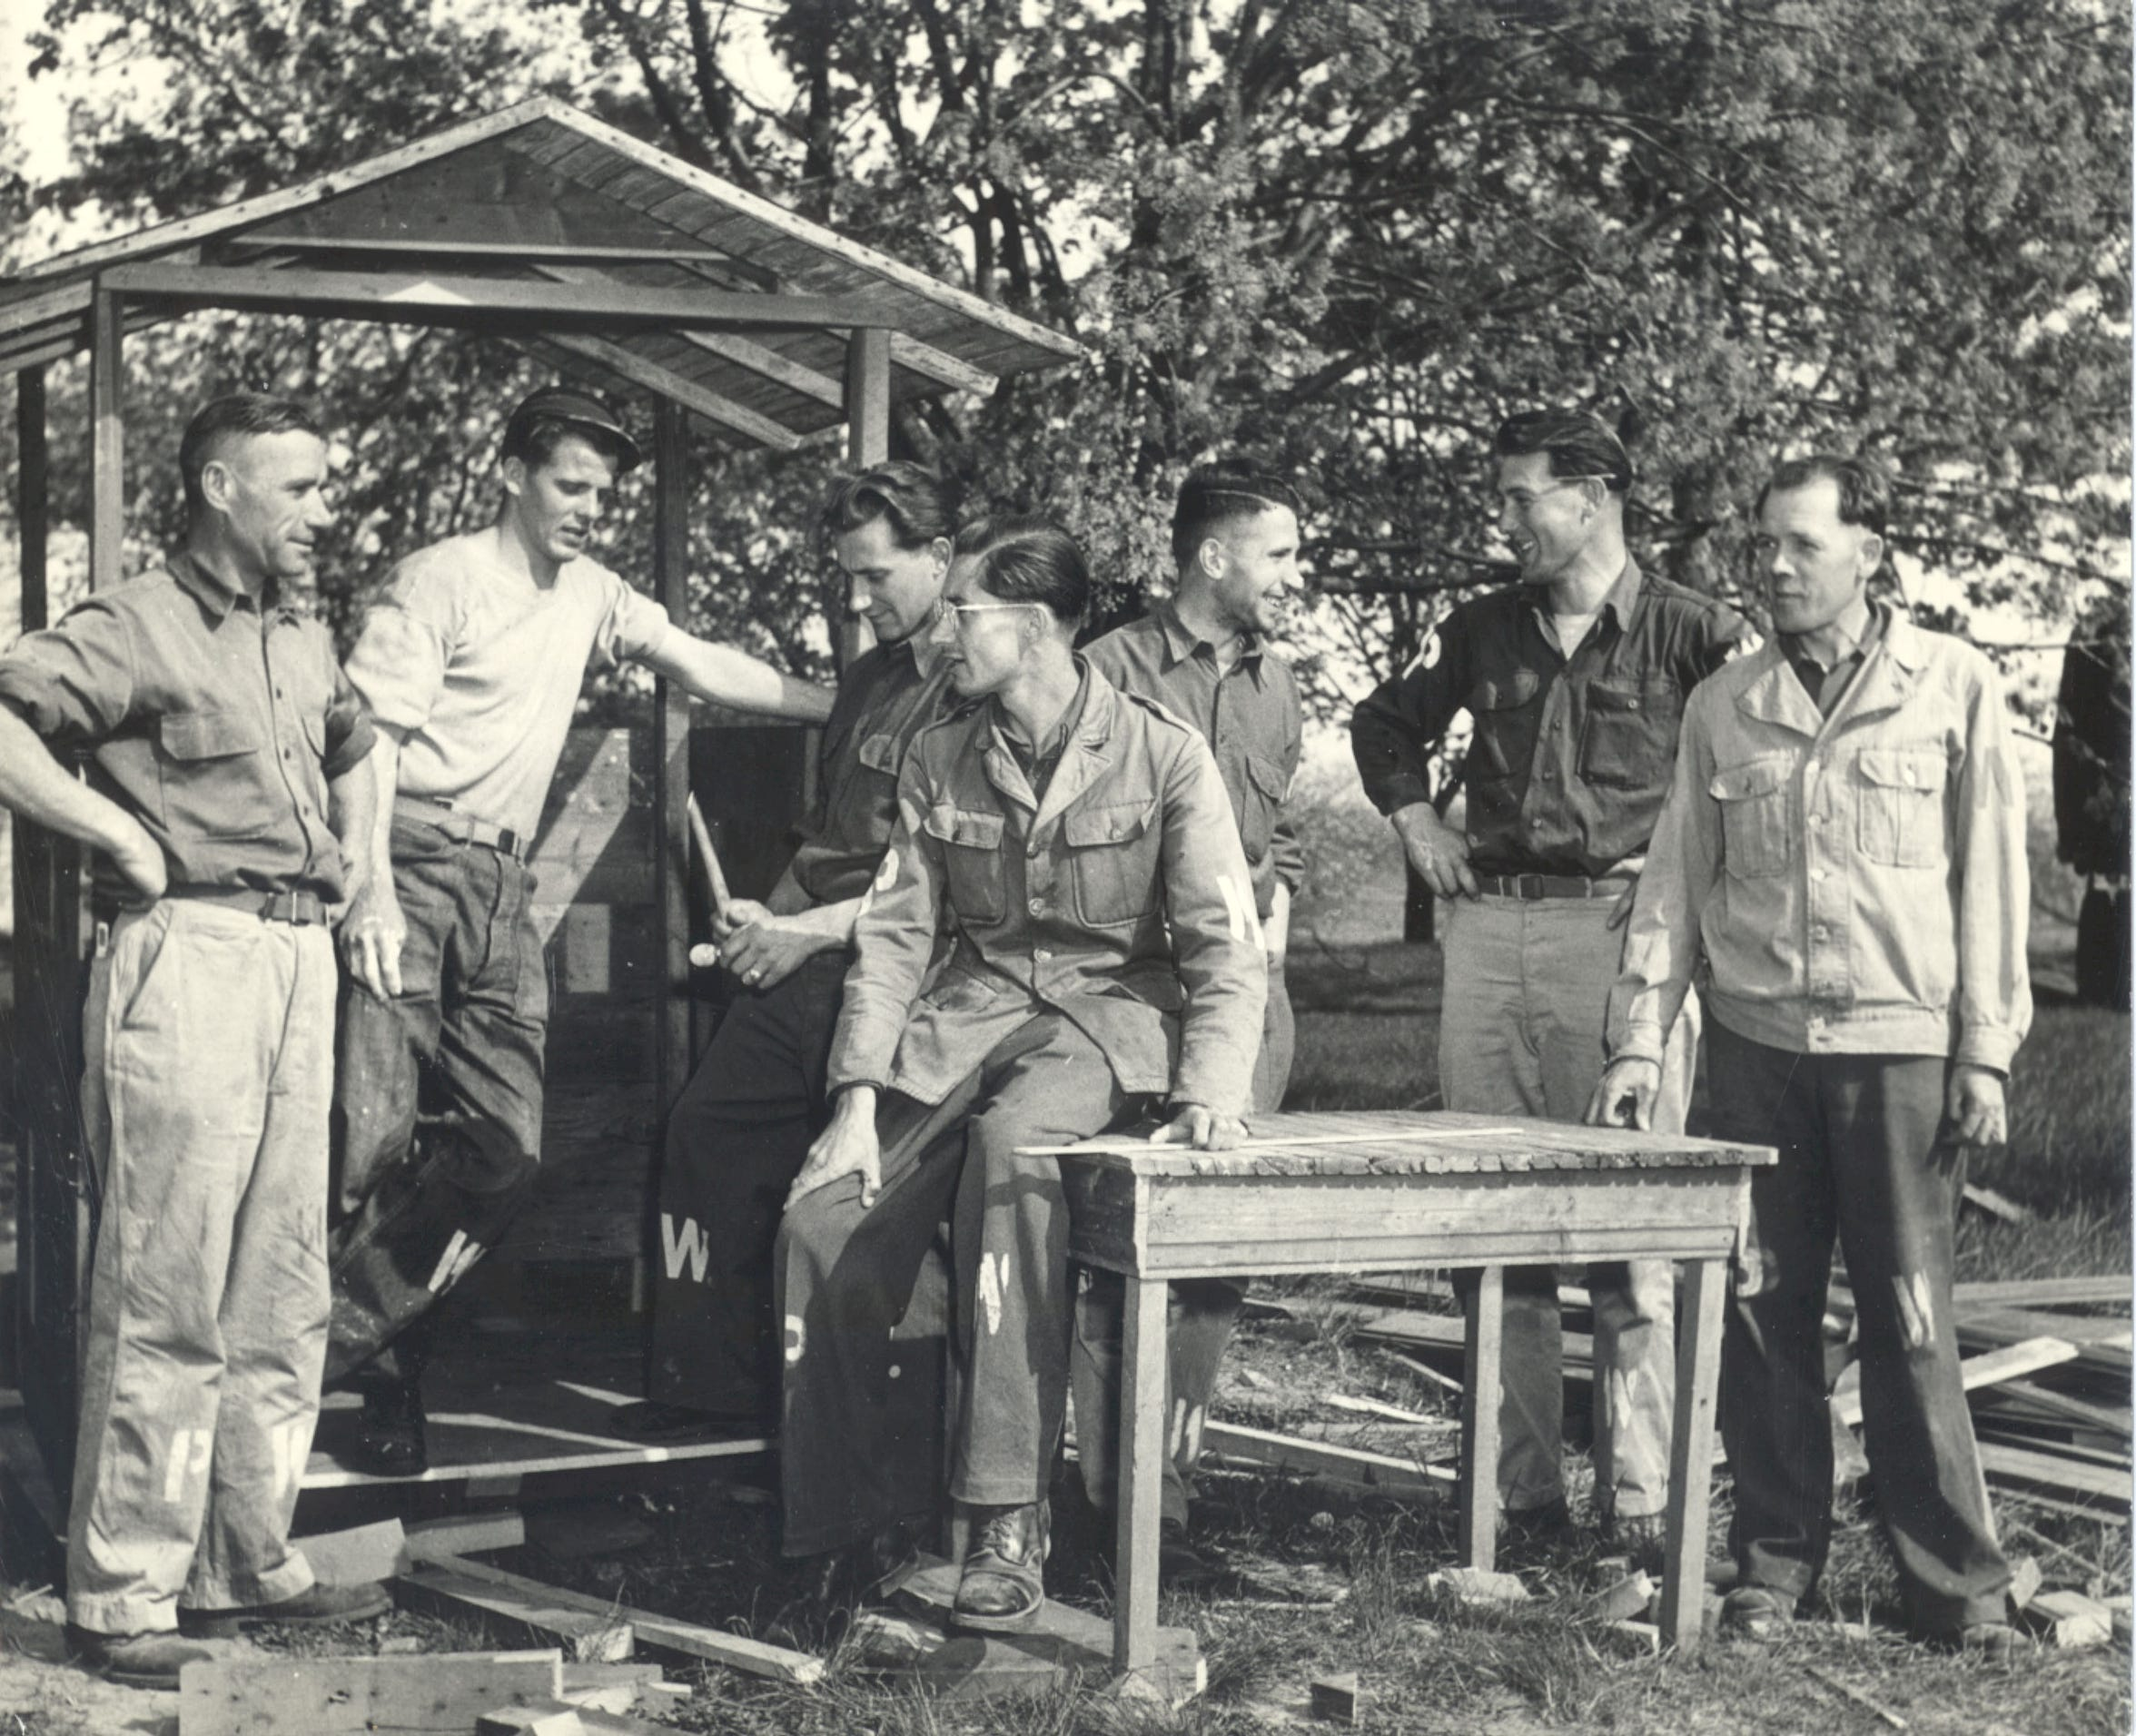 German prisoners of war talking around a table in Door County during World War II. POWs helped harvest cherries and worked in canneries because of a shortage of workers.